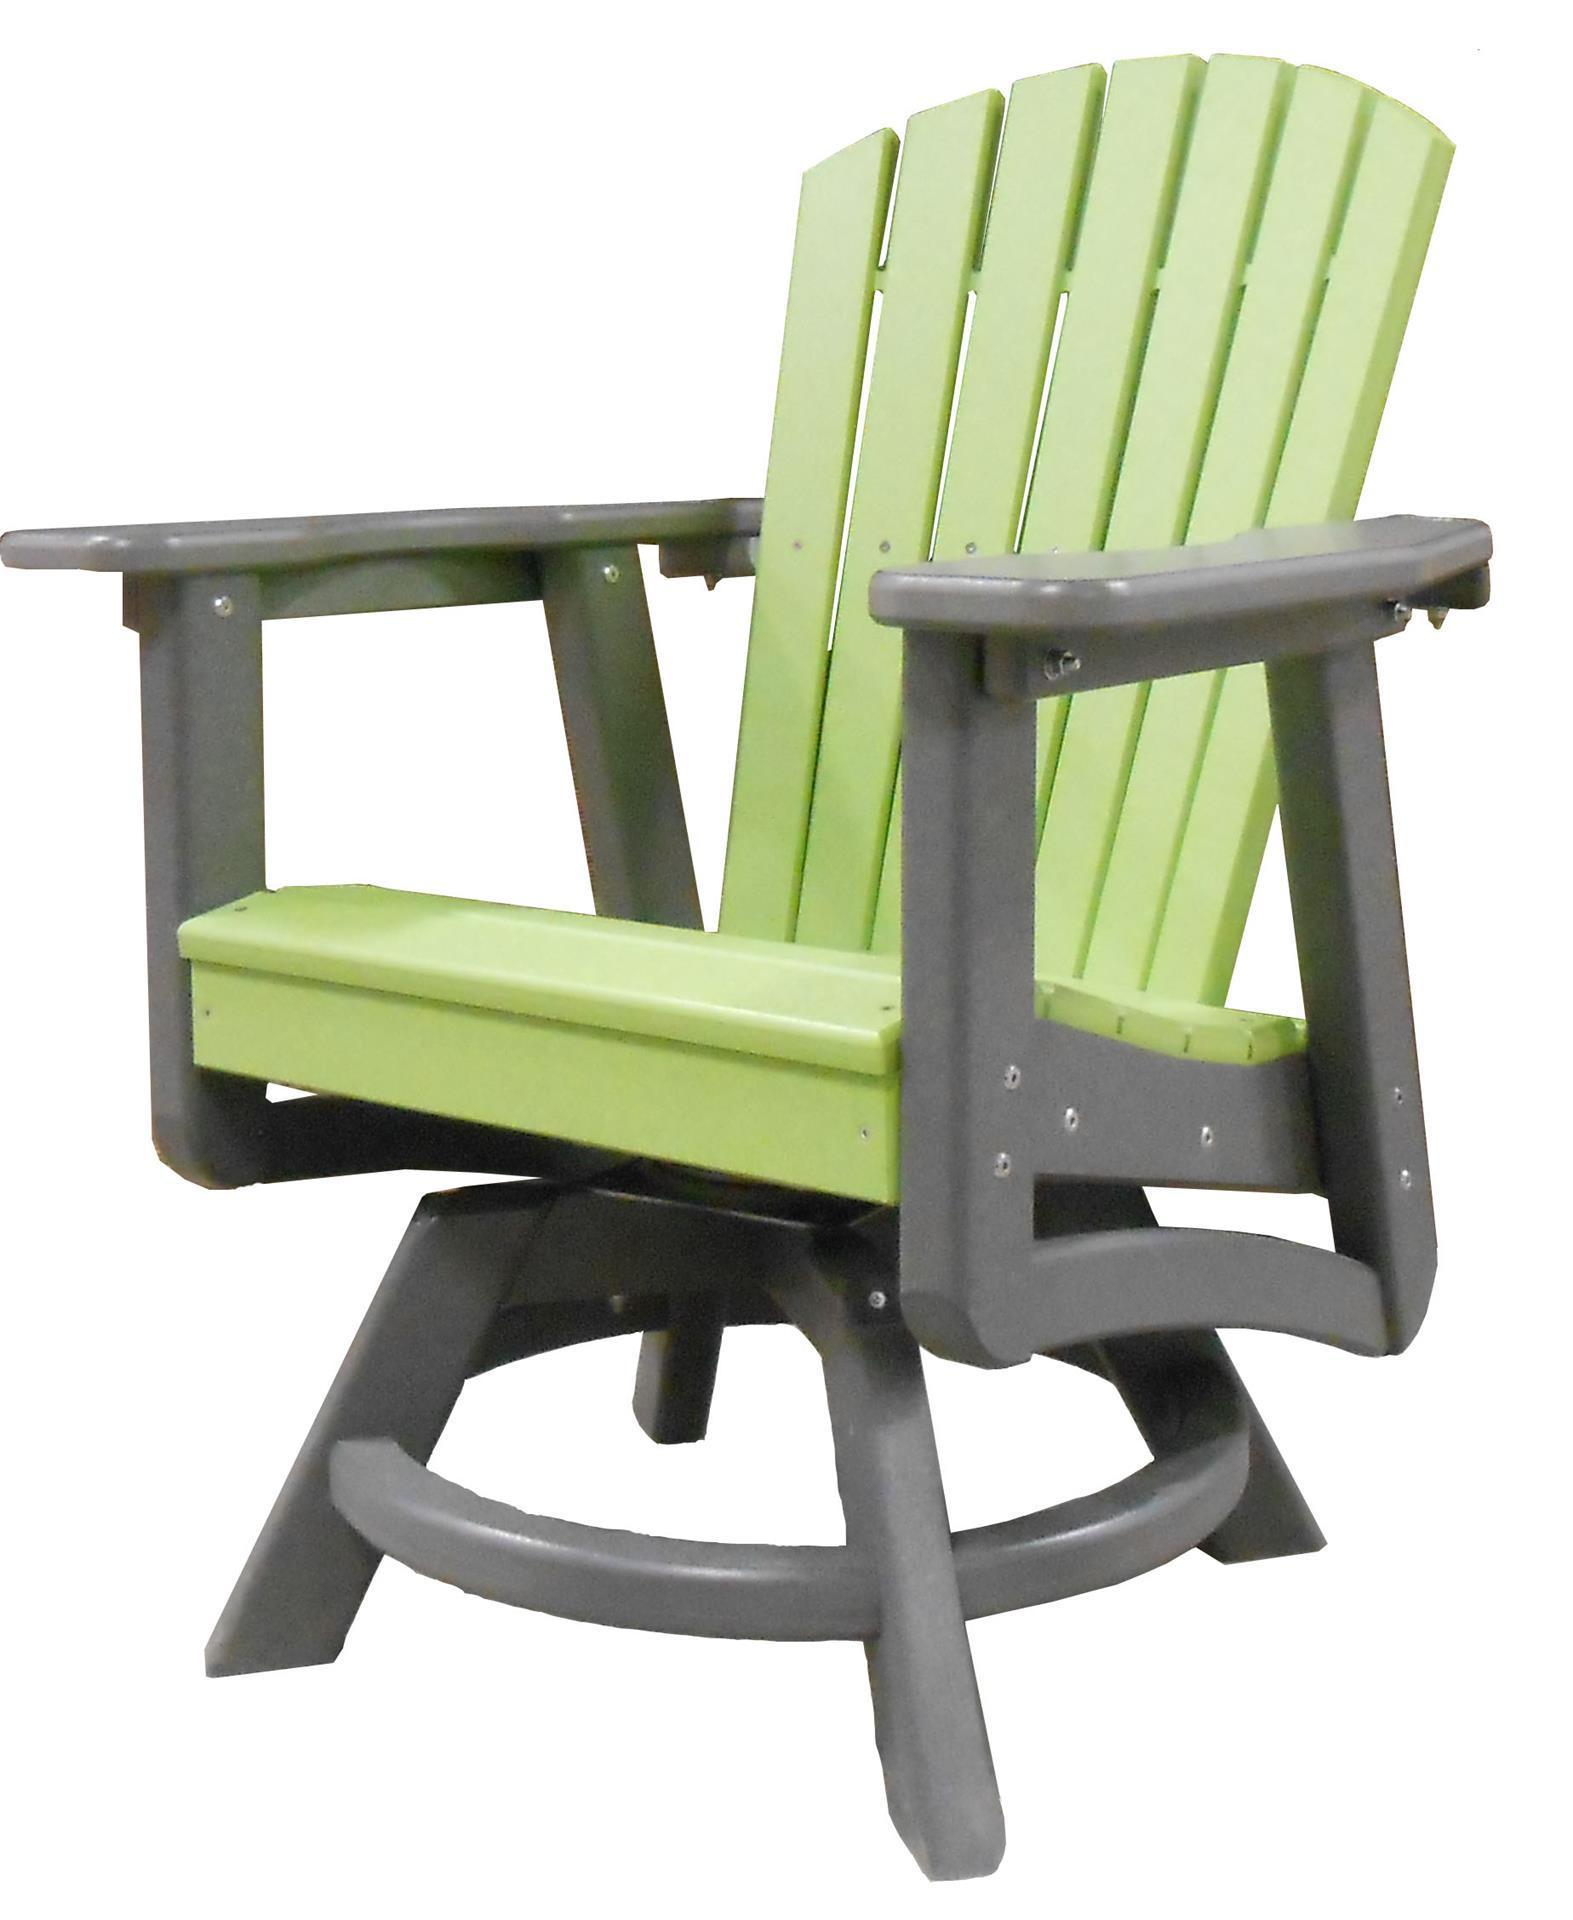 Superb Recycled Poly Outdoor Patio Furniture Swivel Dining Chair Ibusinesslaw Wood Chair Design Ideas Ibusinesslaworg